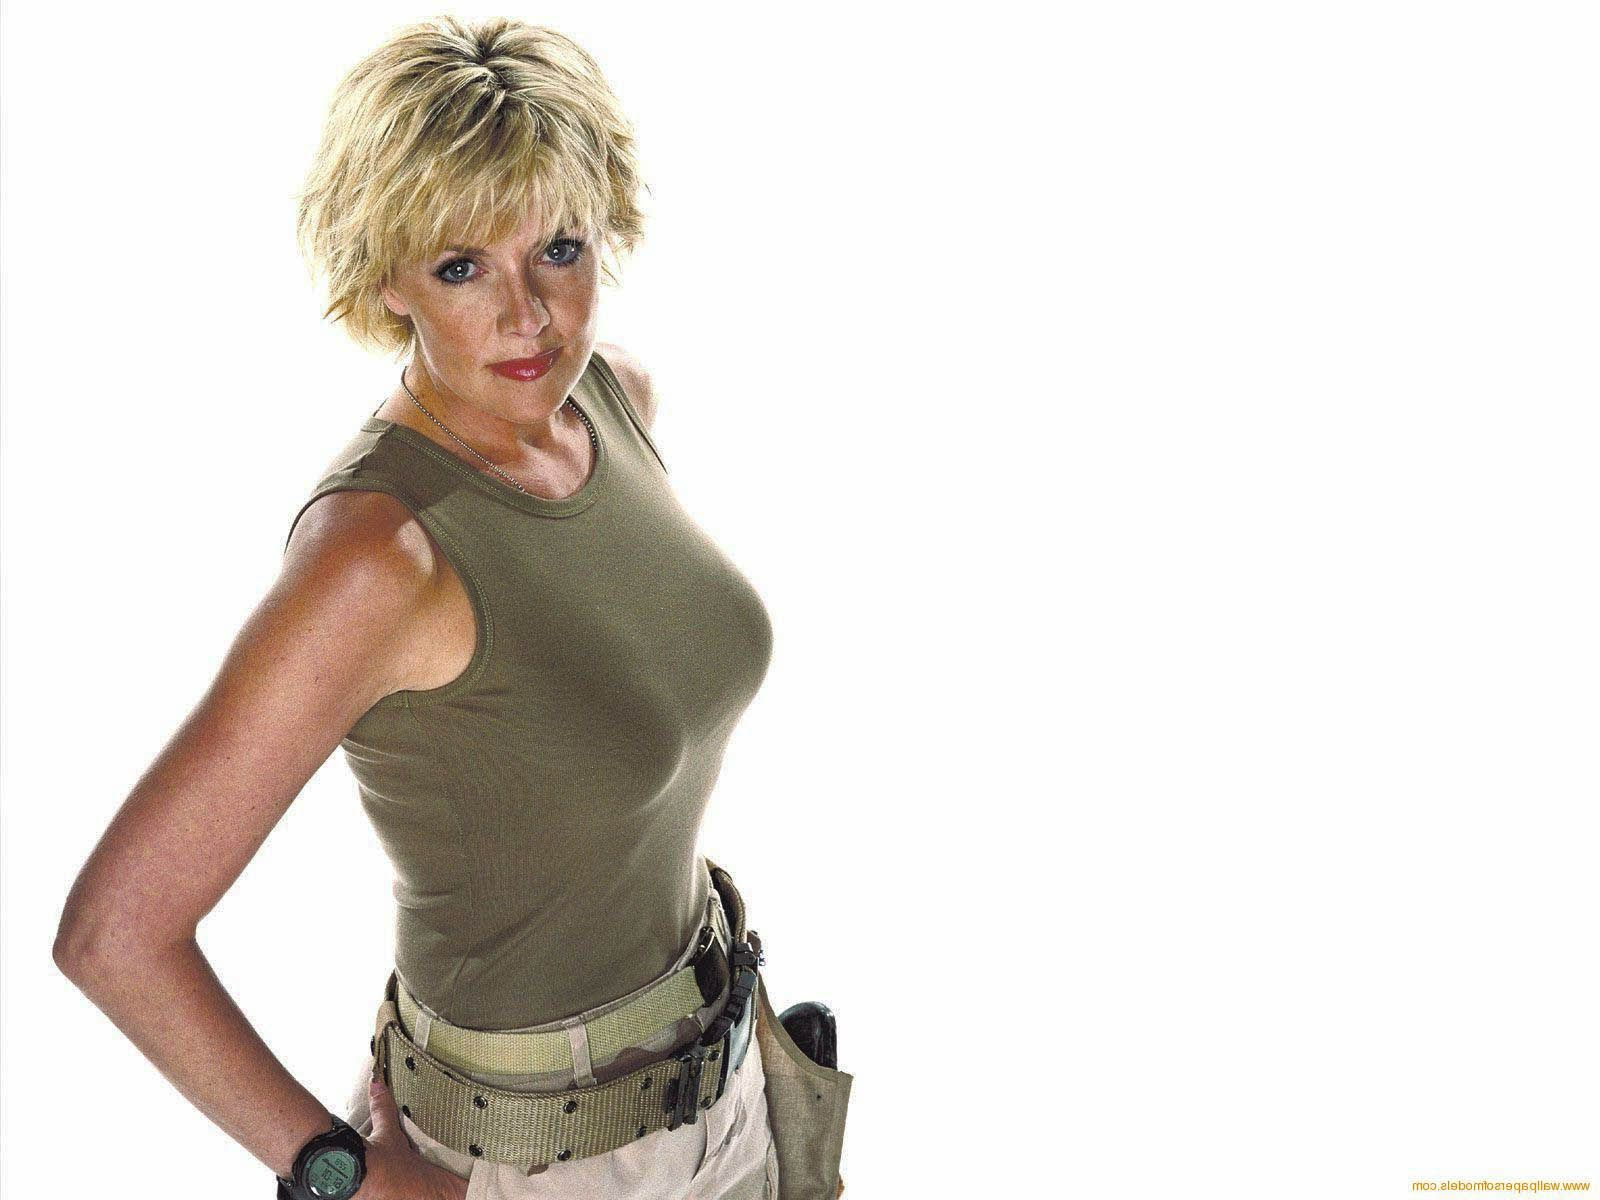 Stargate sg 1 tv show high quality hd wallpapers pinterest stargate sg 1 tv show high quality hd wallpapers stargate sg 1 wallpapers and backgrounds and download them on all your devices computer smartphone voltagebd Image collections